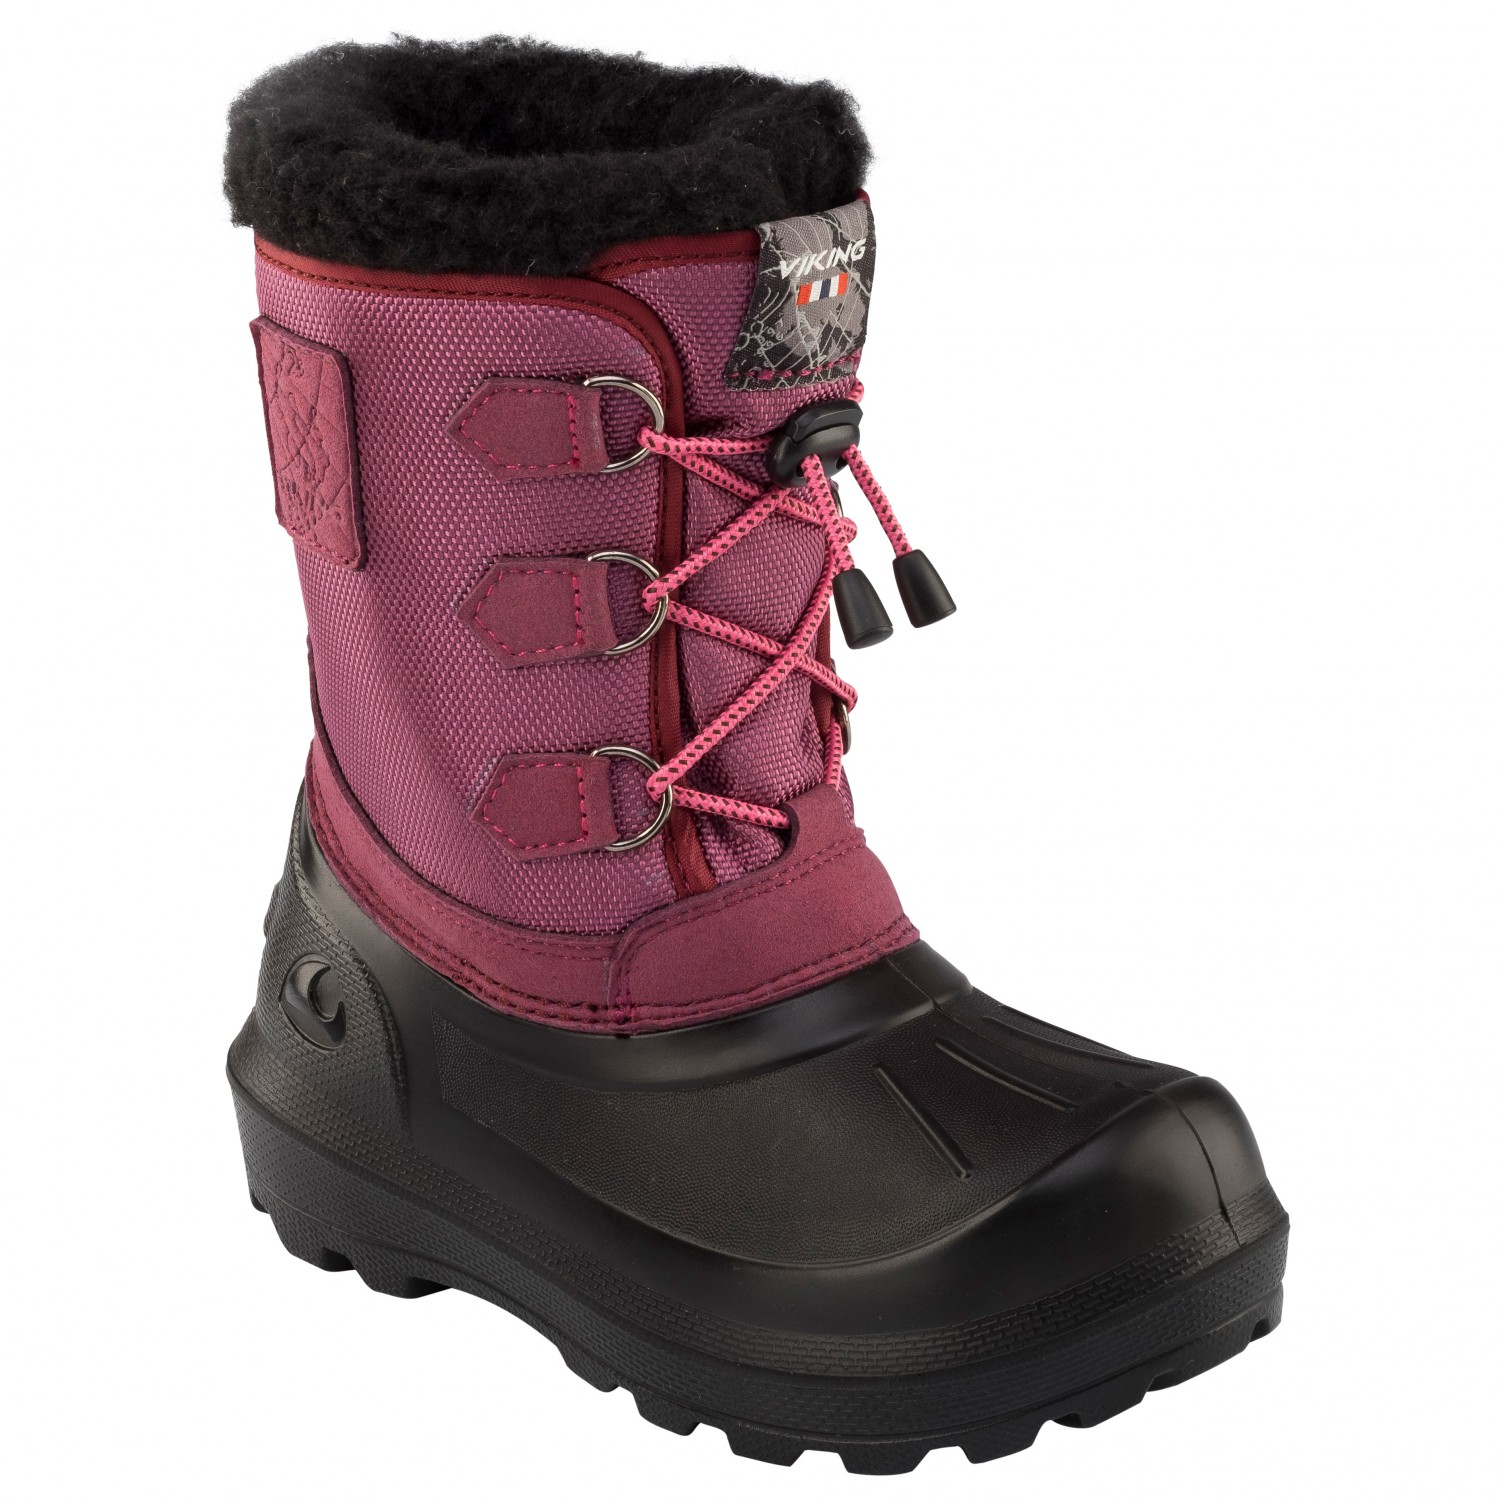 Viking Istind - Winter boots Kids | Free EU Delivery